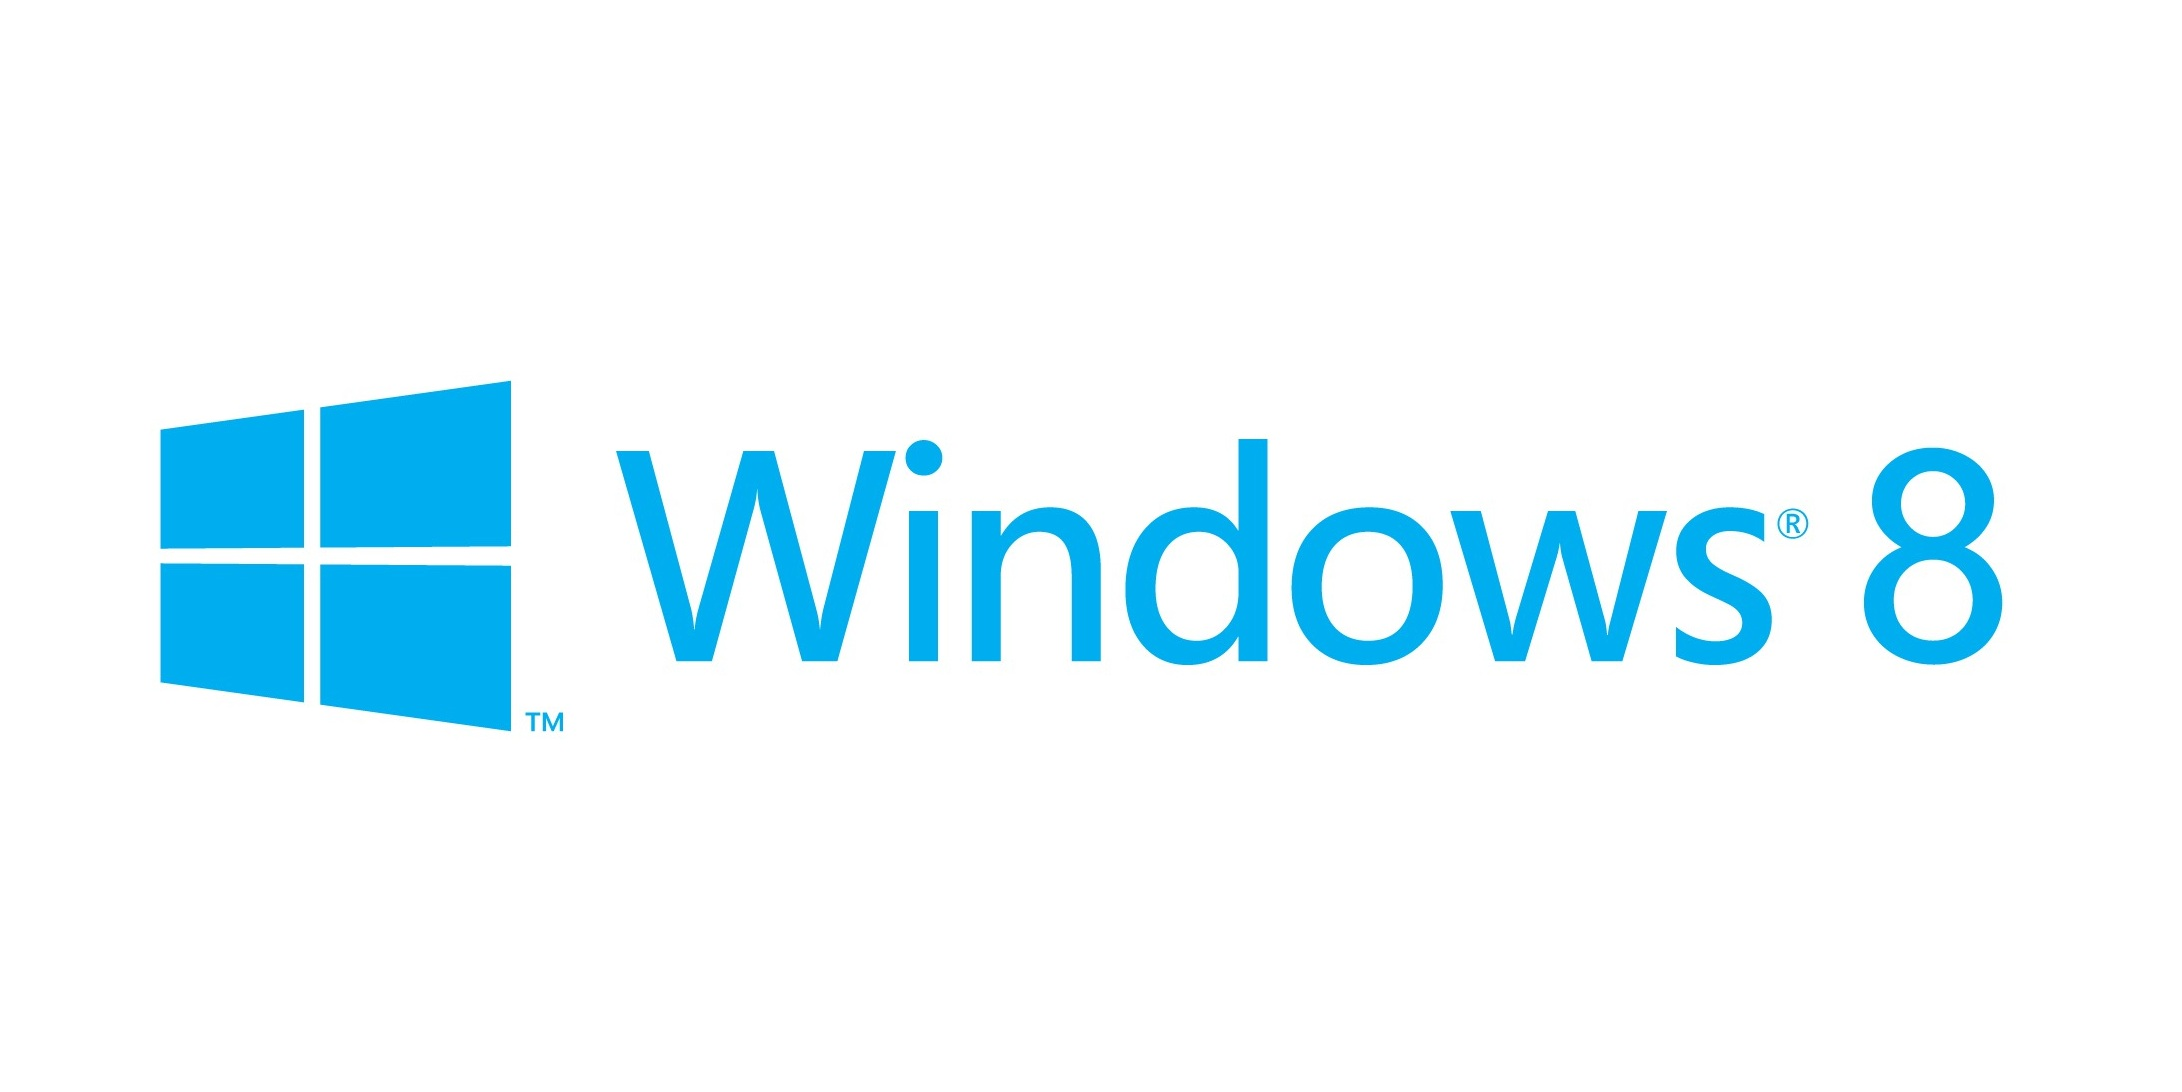 windows 8 Windows 8 was released with four editions, with varying feature sets the editions with modified features are called pro, enterprise, and rt.